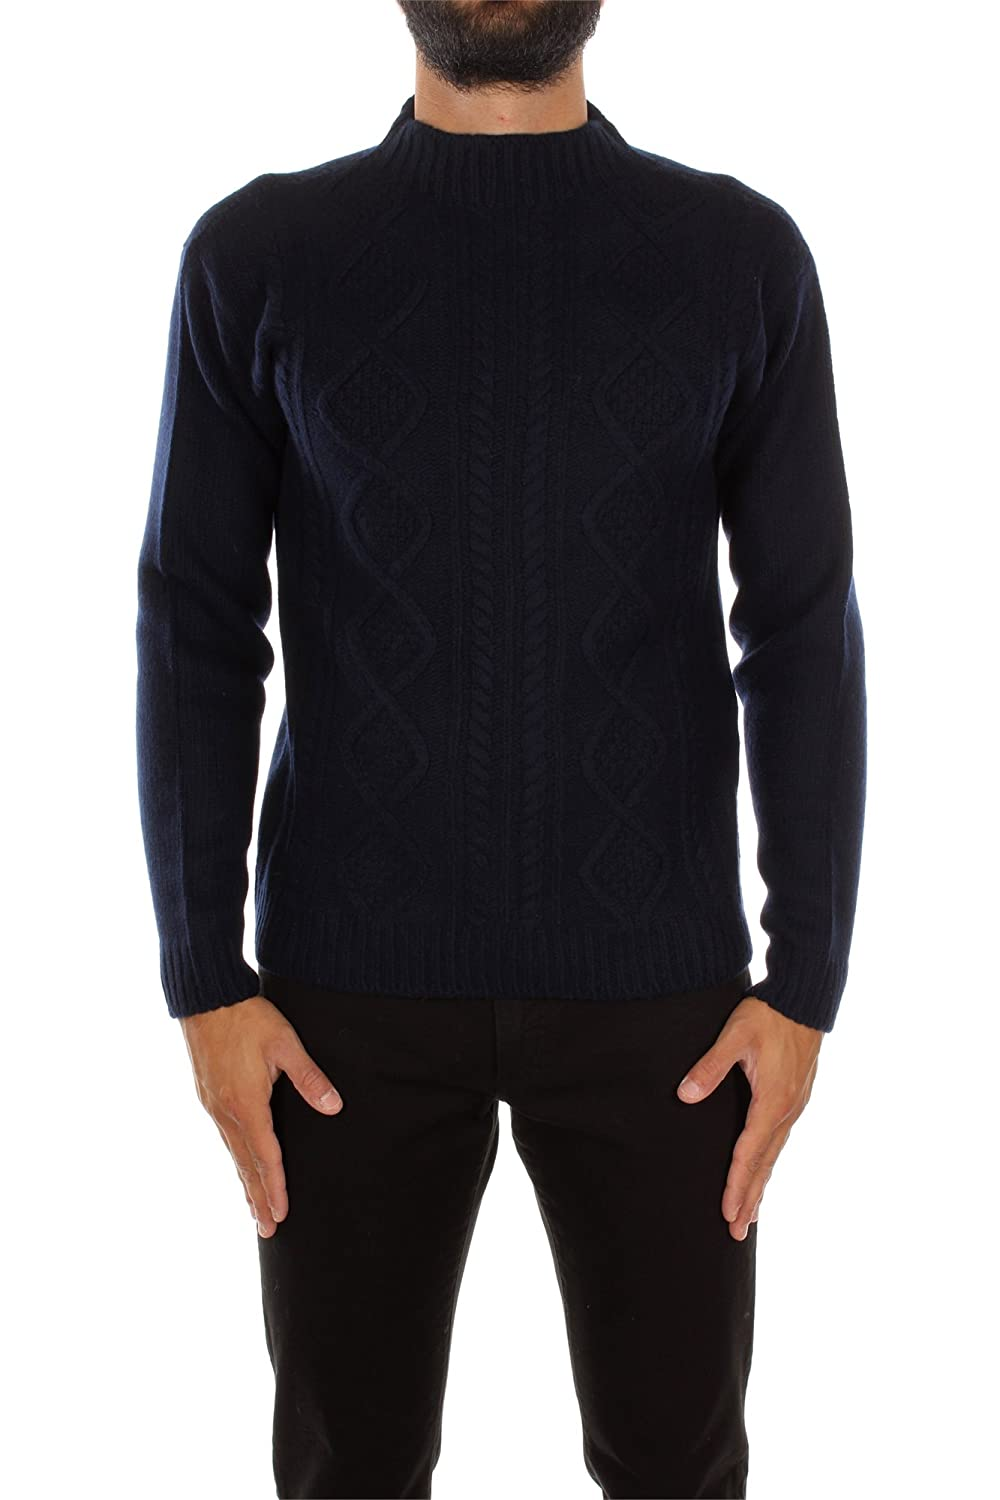 SMM840BLEU Prada Sweatshirts Men Wool Blue